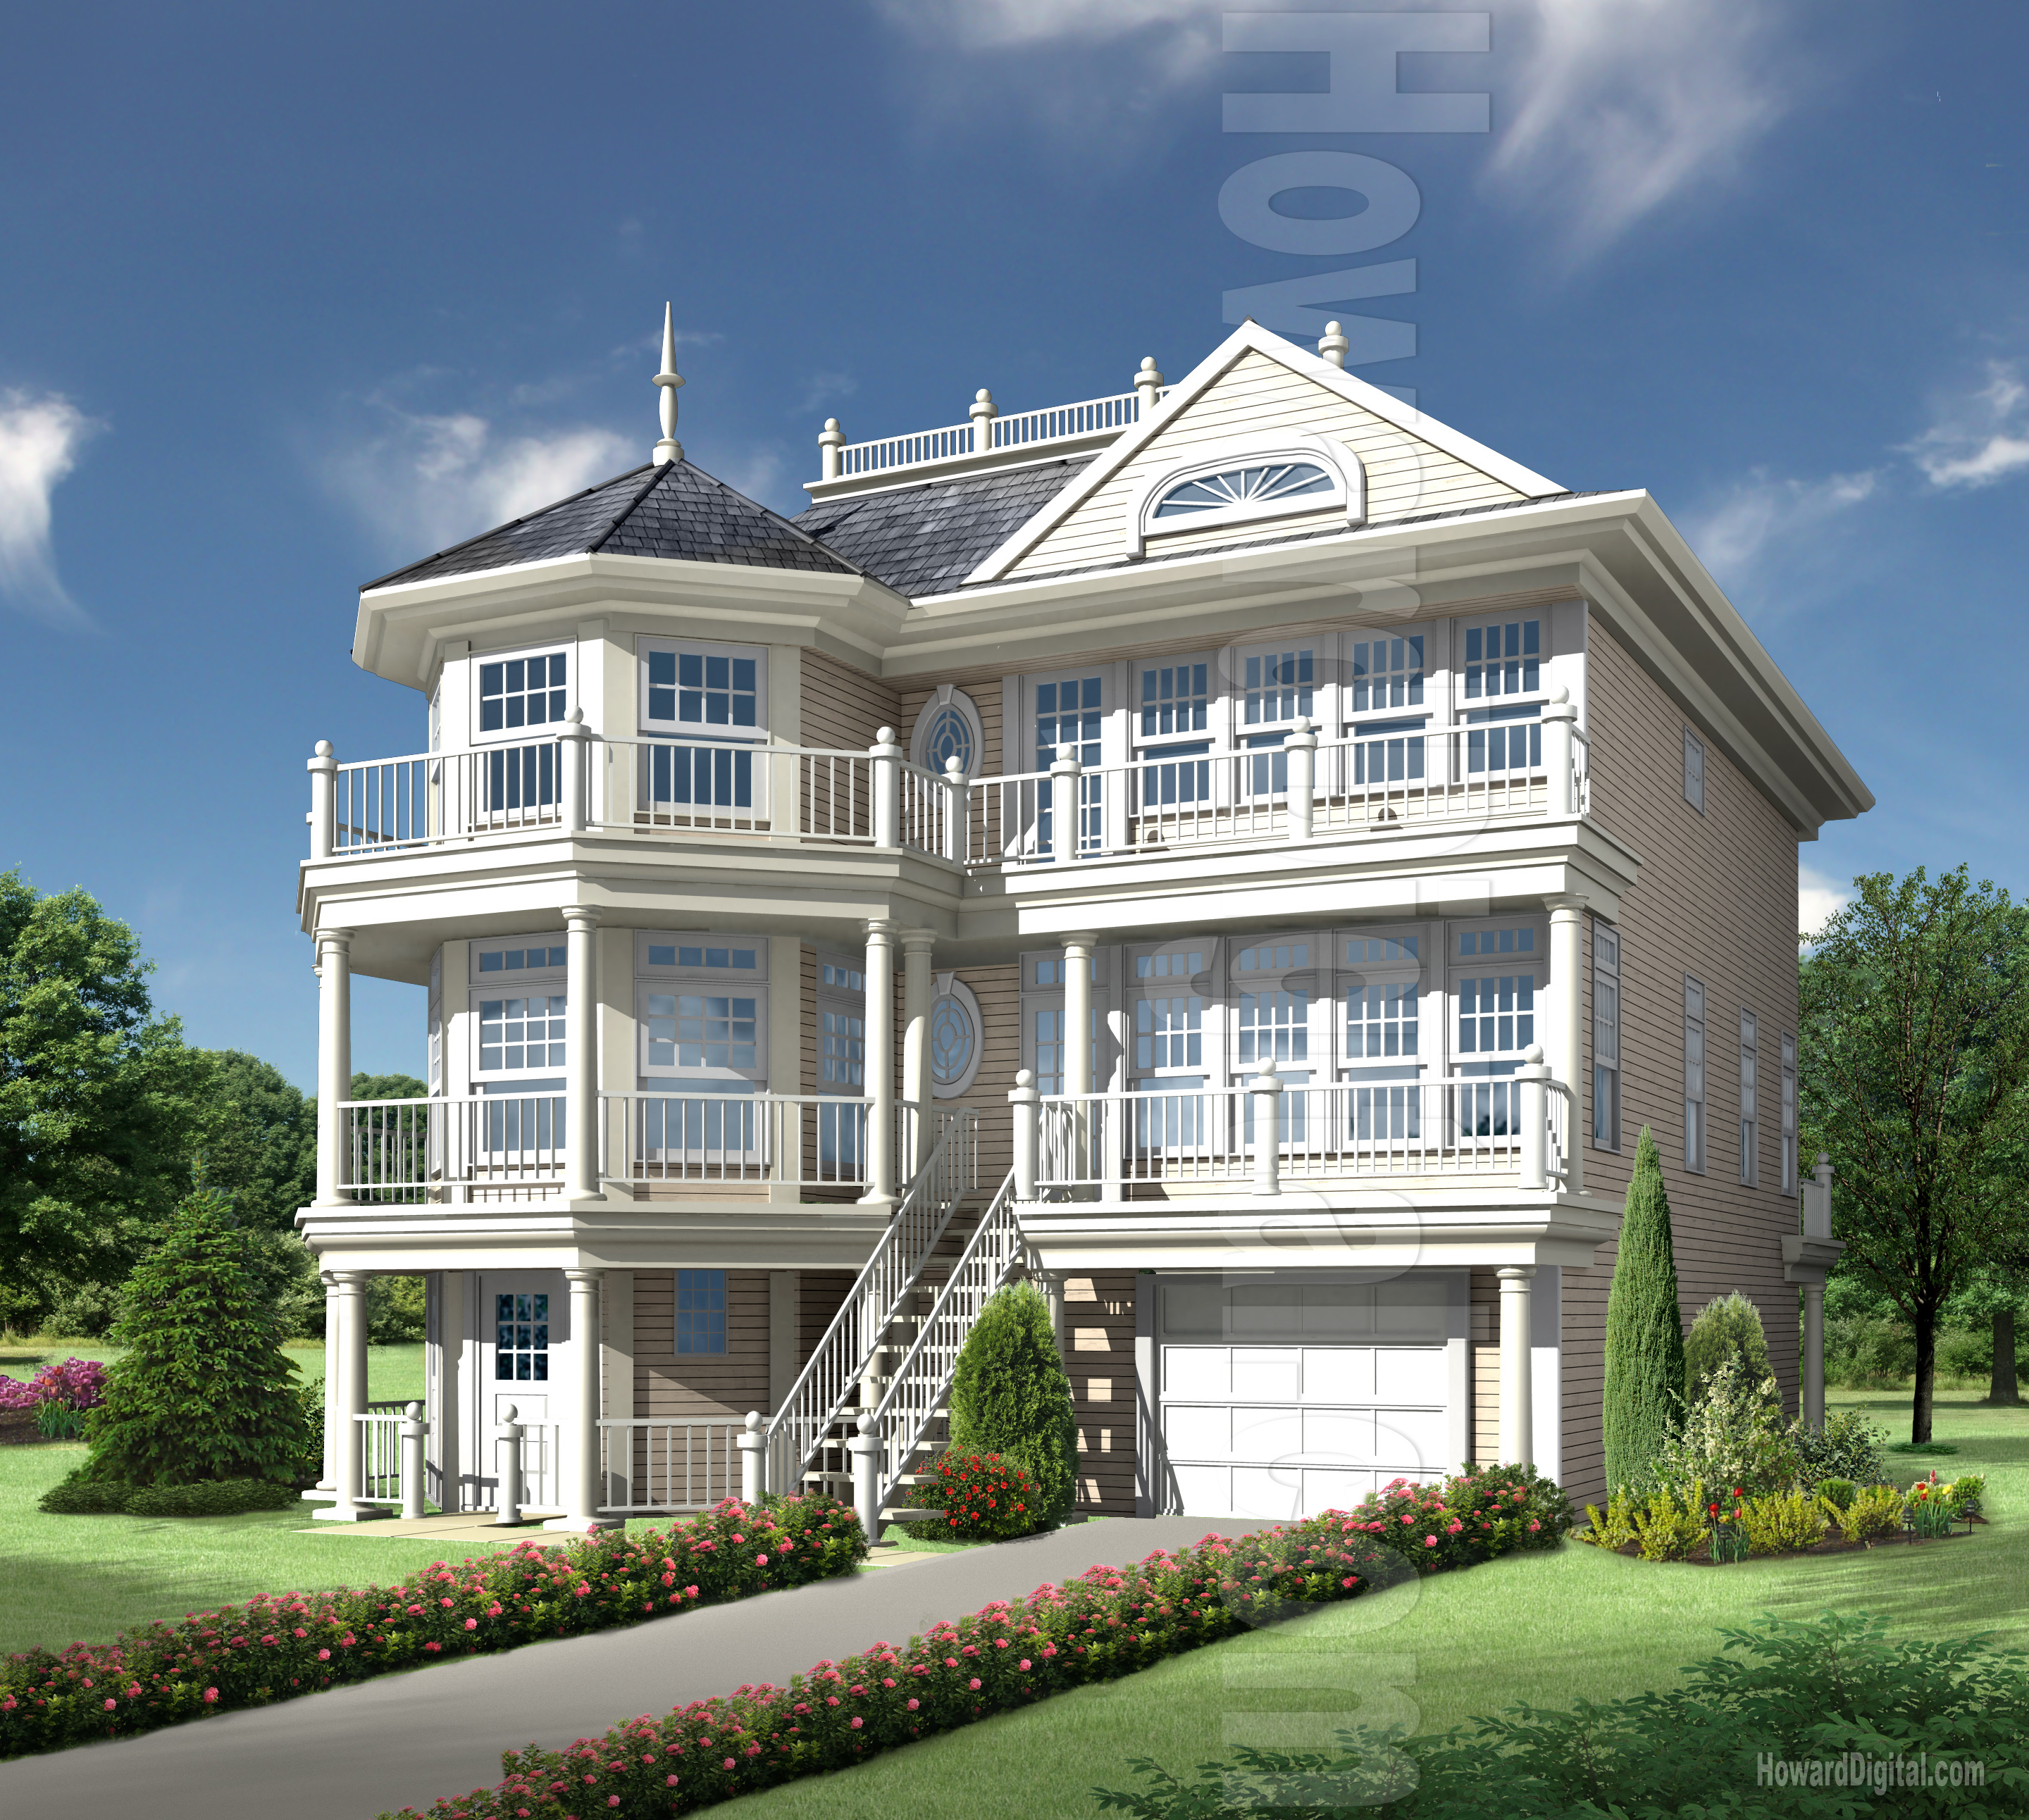 Phenomenal House Rendering Howard Digital Largest Home Design Picture Inspirations Pitcheantrous